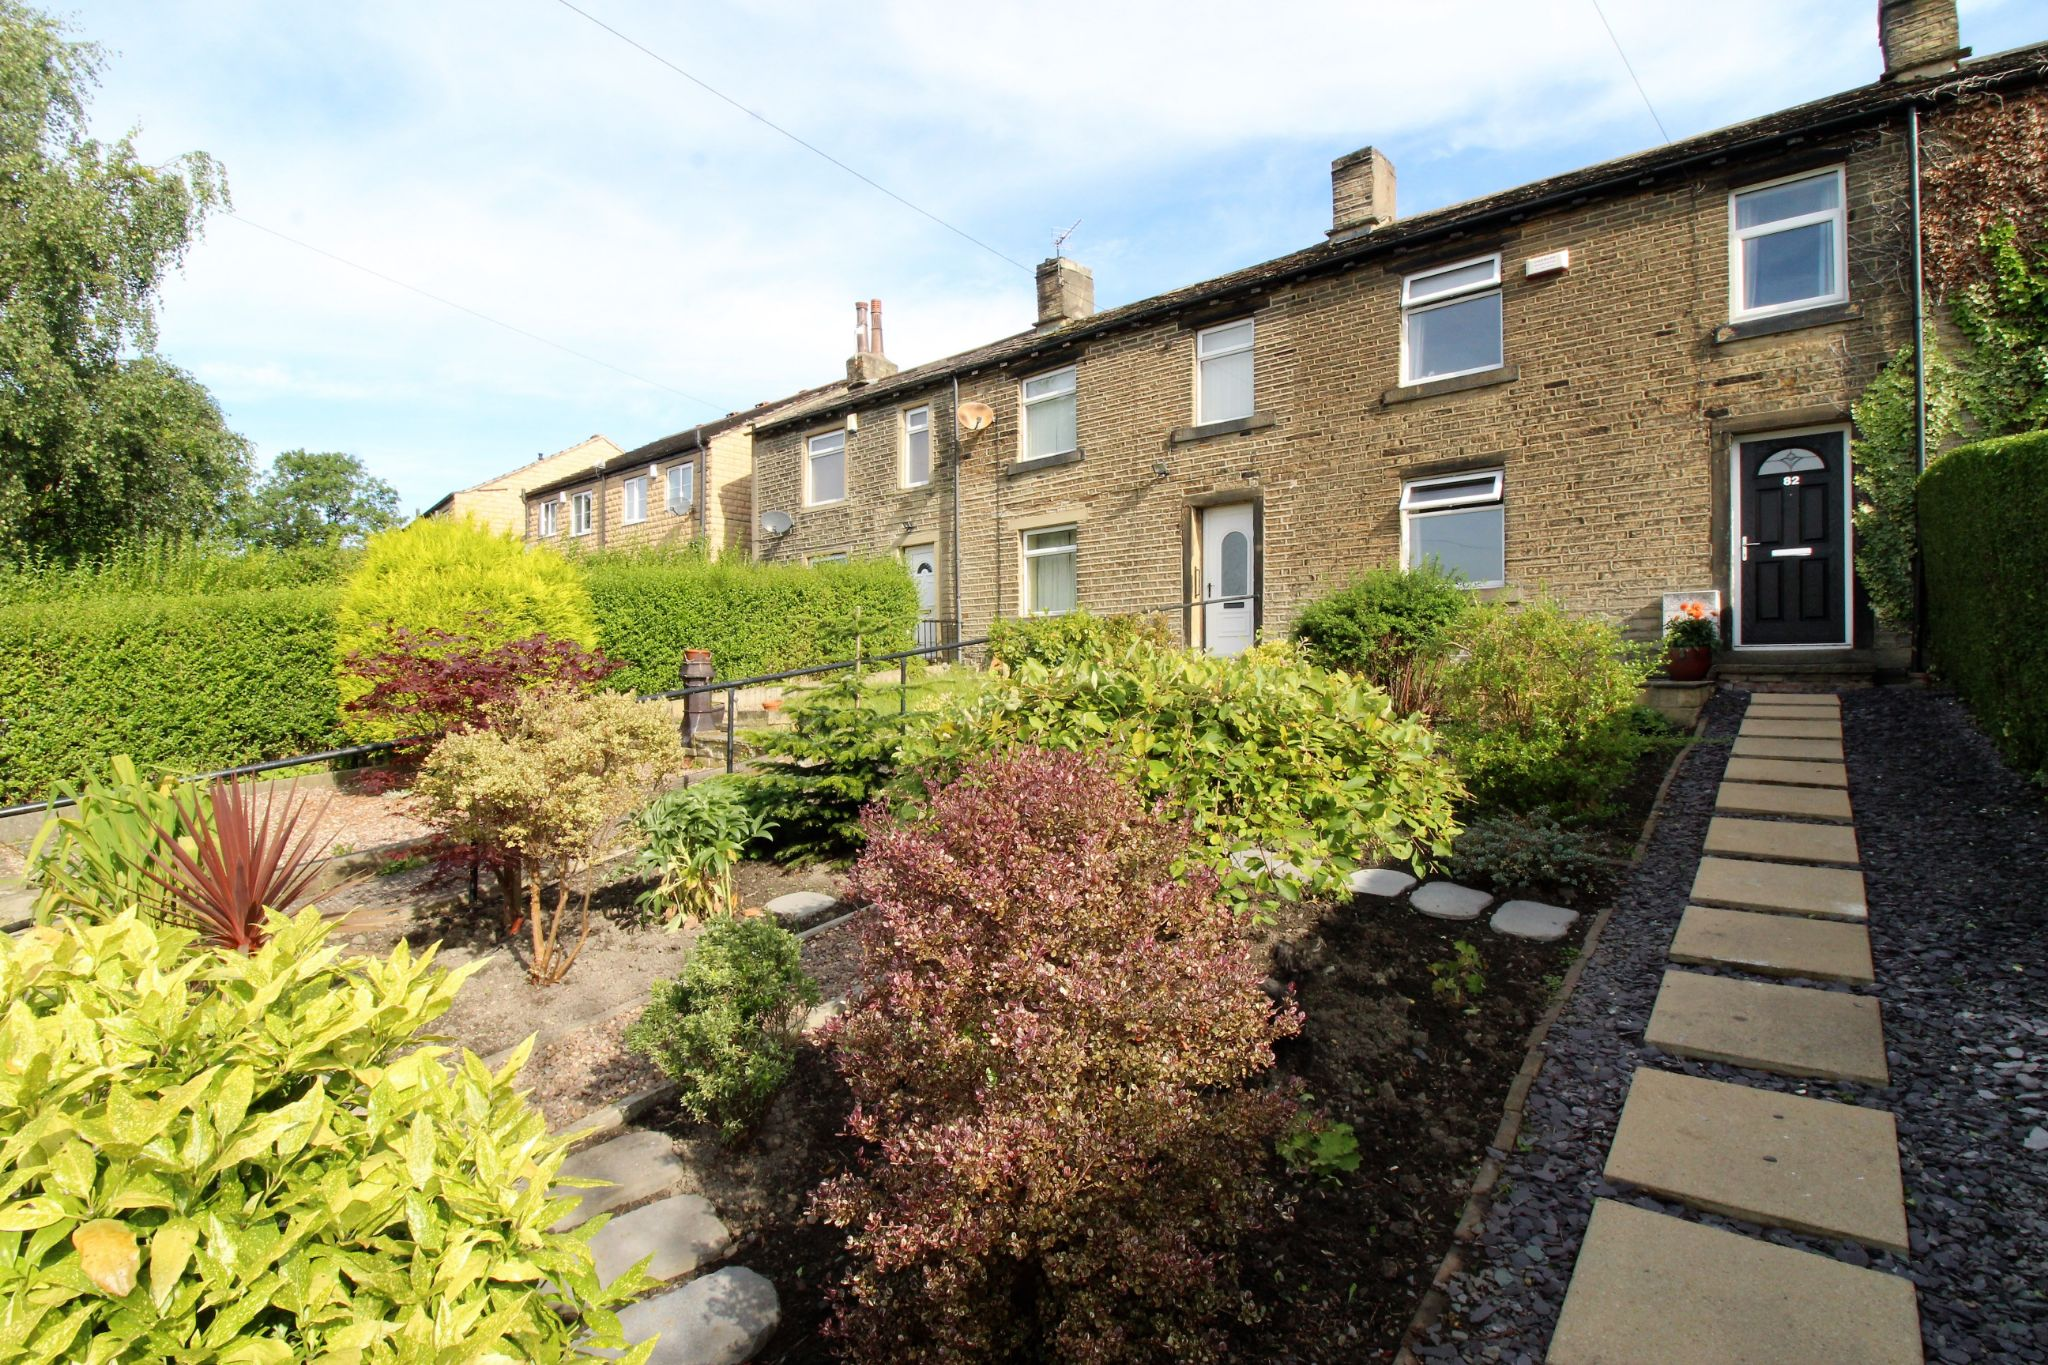 2 bedroom cottage house SSTC in Huddersfield - View of the front of the property